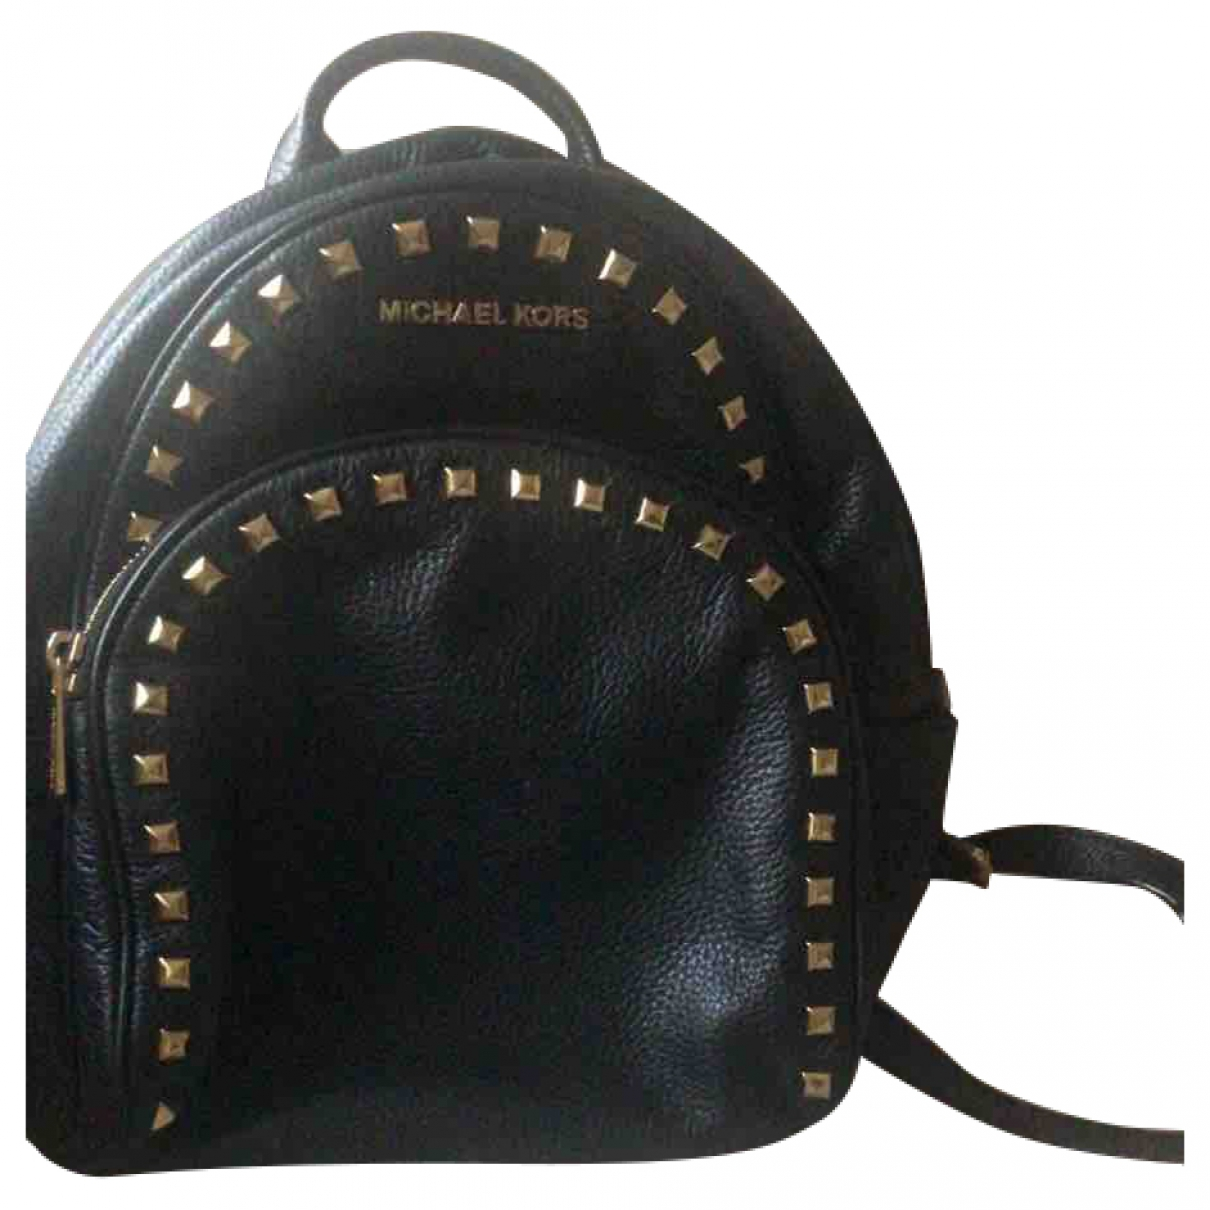 Michael Kors \N Black Leather backpack for Women \N